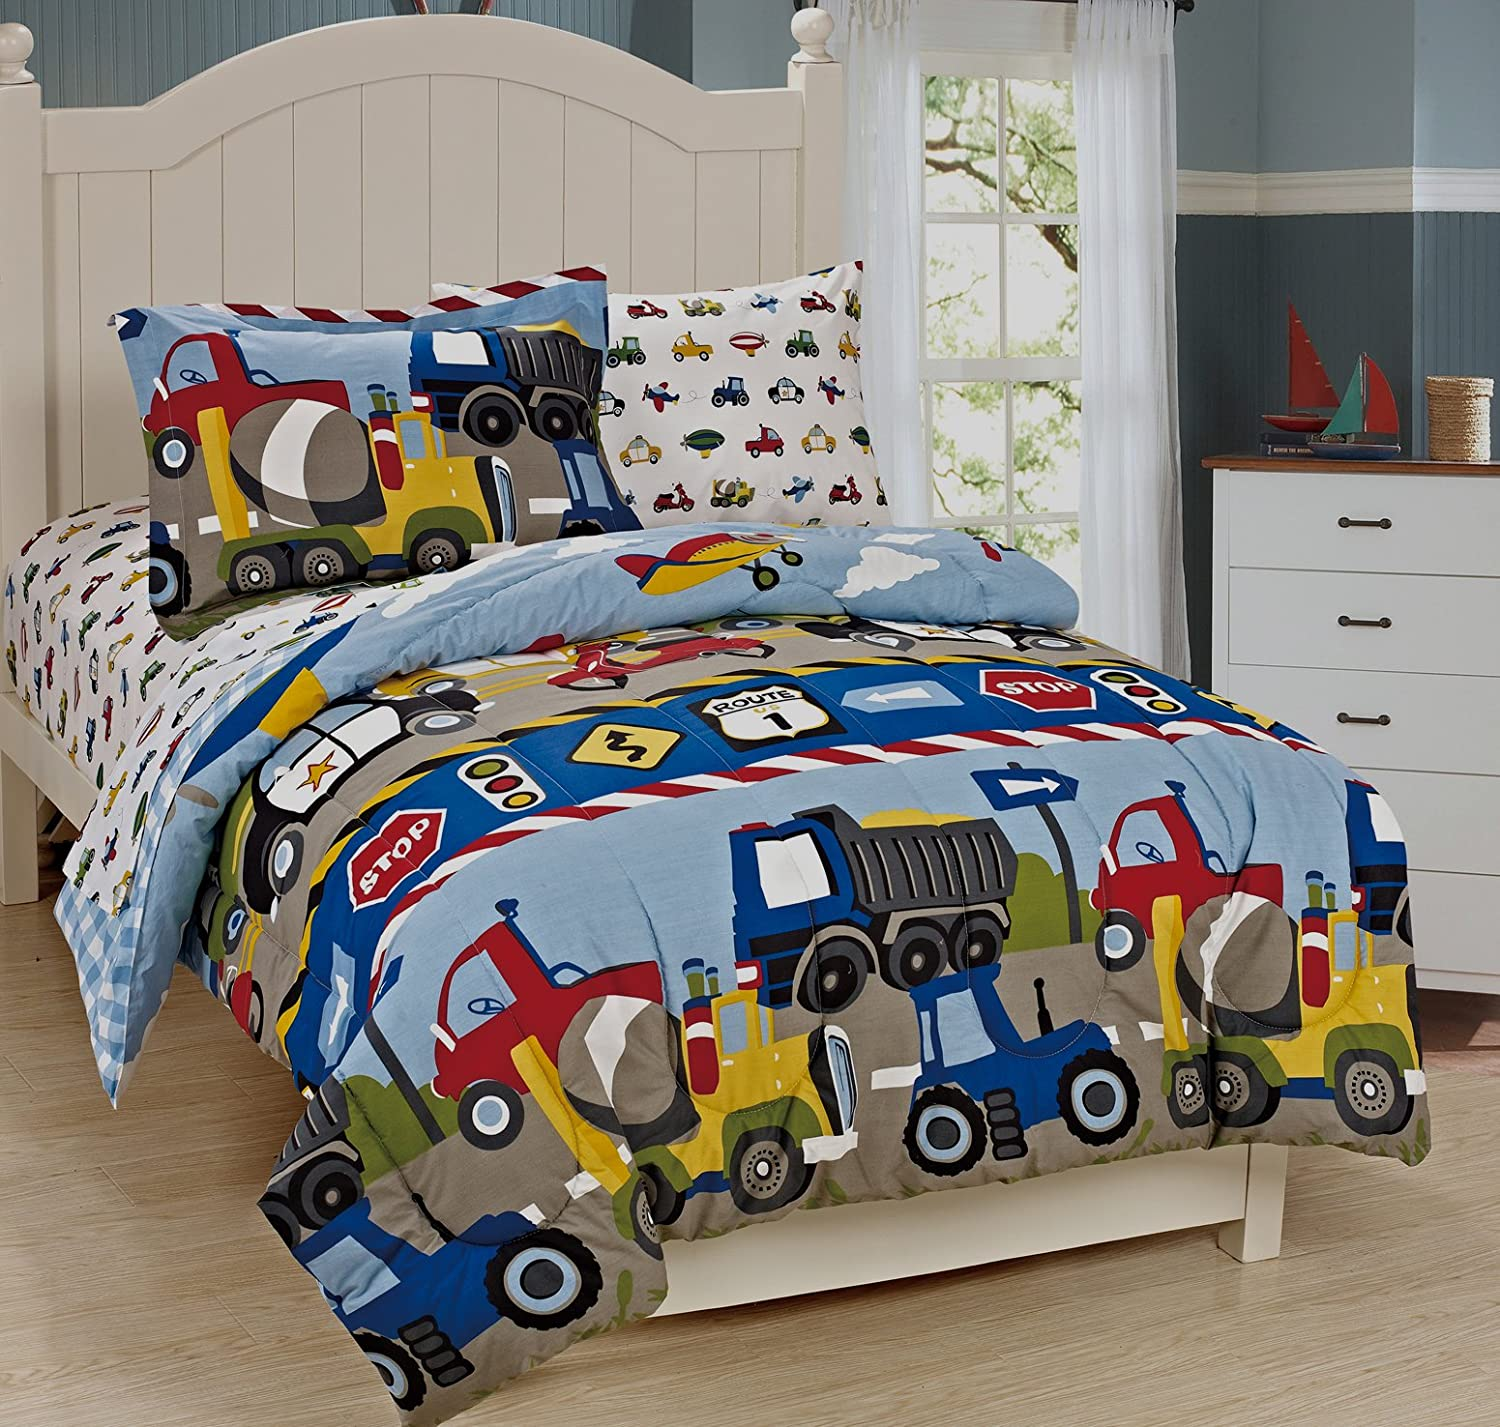 Mk Collection Full Size Trucks Tractors Cars Kids/boys 7 Pc Comforter and Sheet Set Blue Red Yellow Full, Trucks